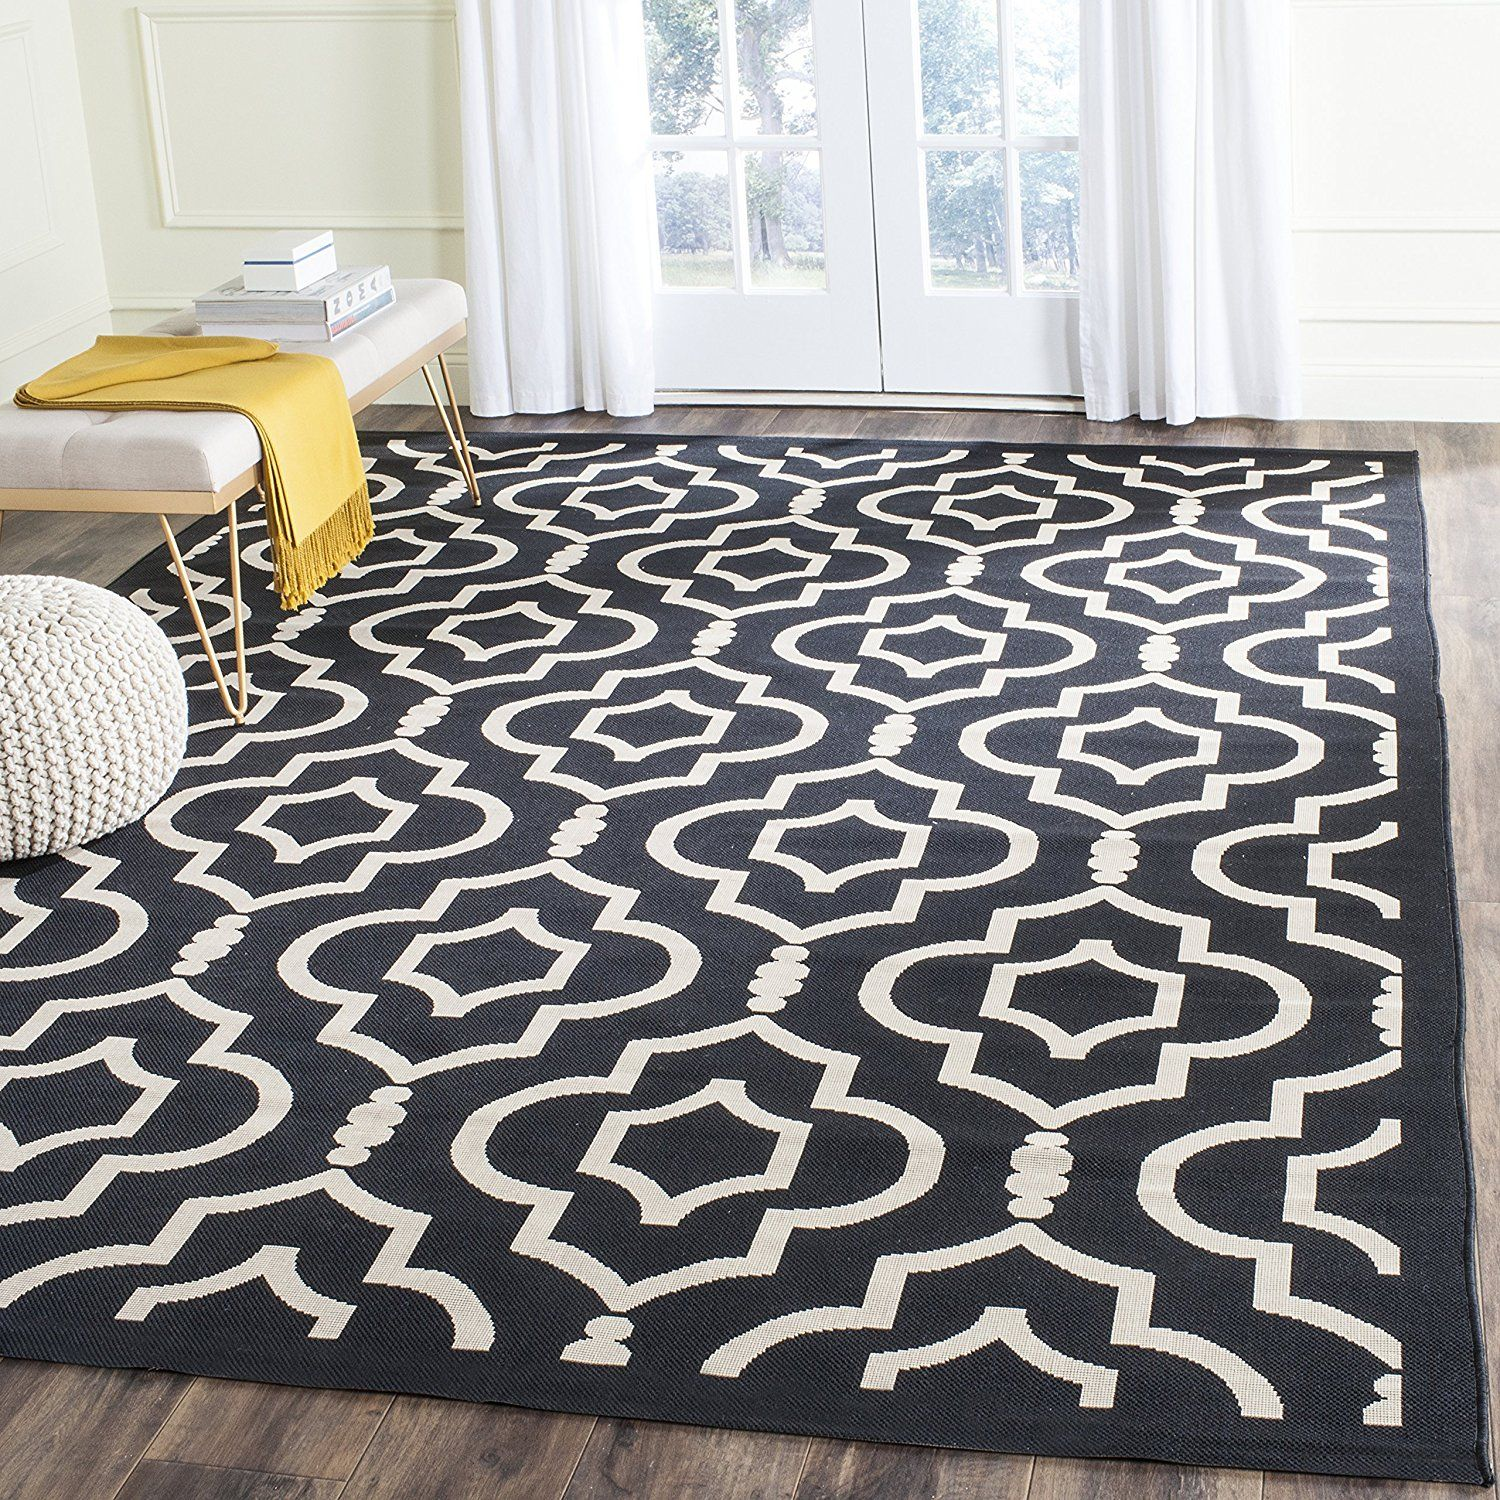 Large Black And White Area Rug Affiliate Link Inexpensive Rugs